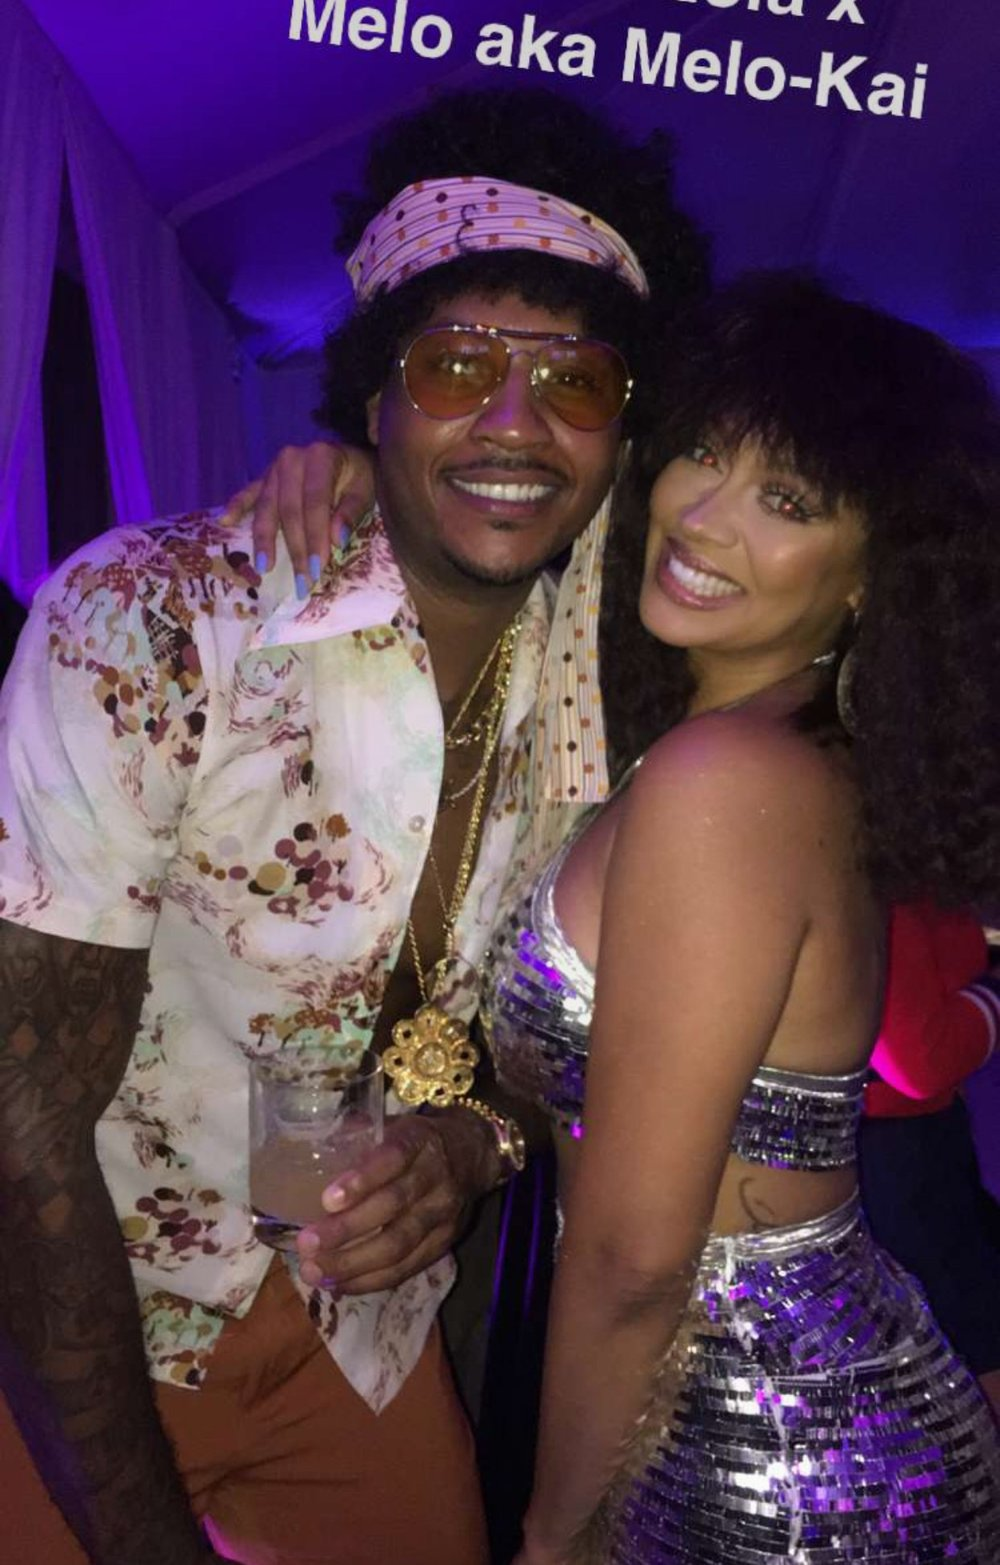 carmelo-anthony-lala-beyonce-soul-train-birthday-bellanaija.jpg